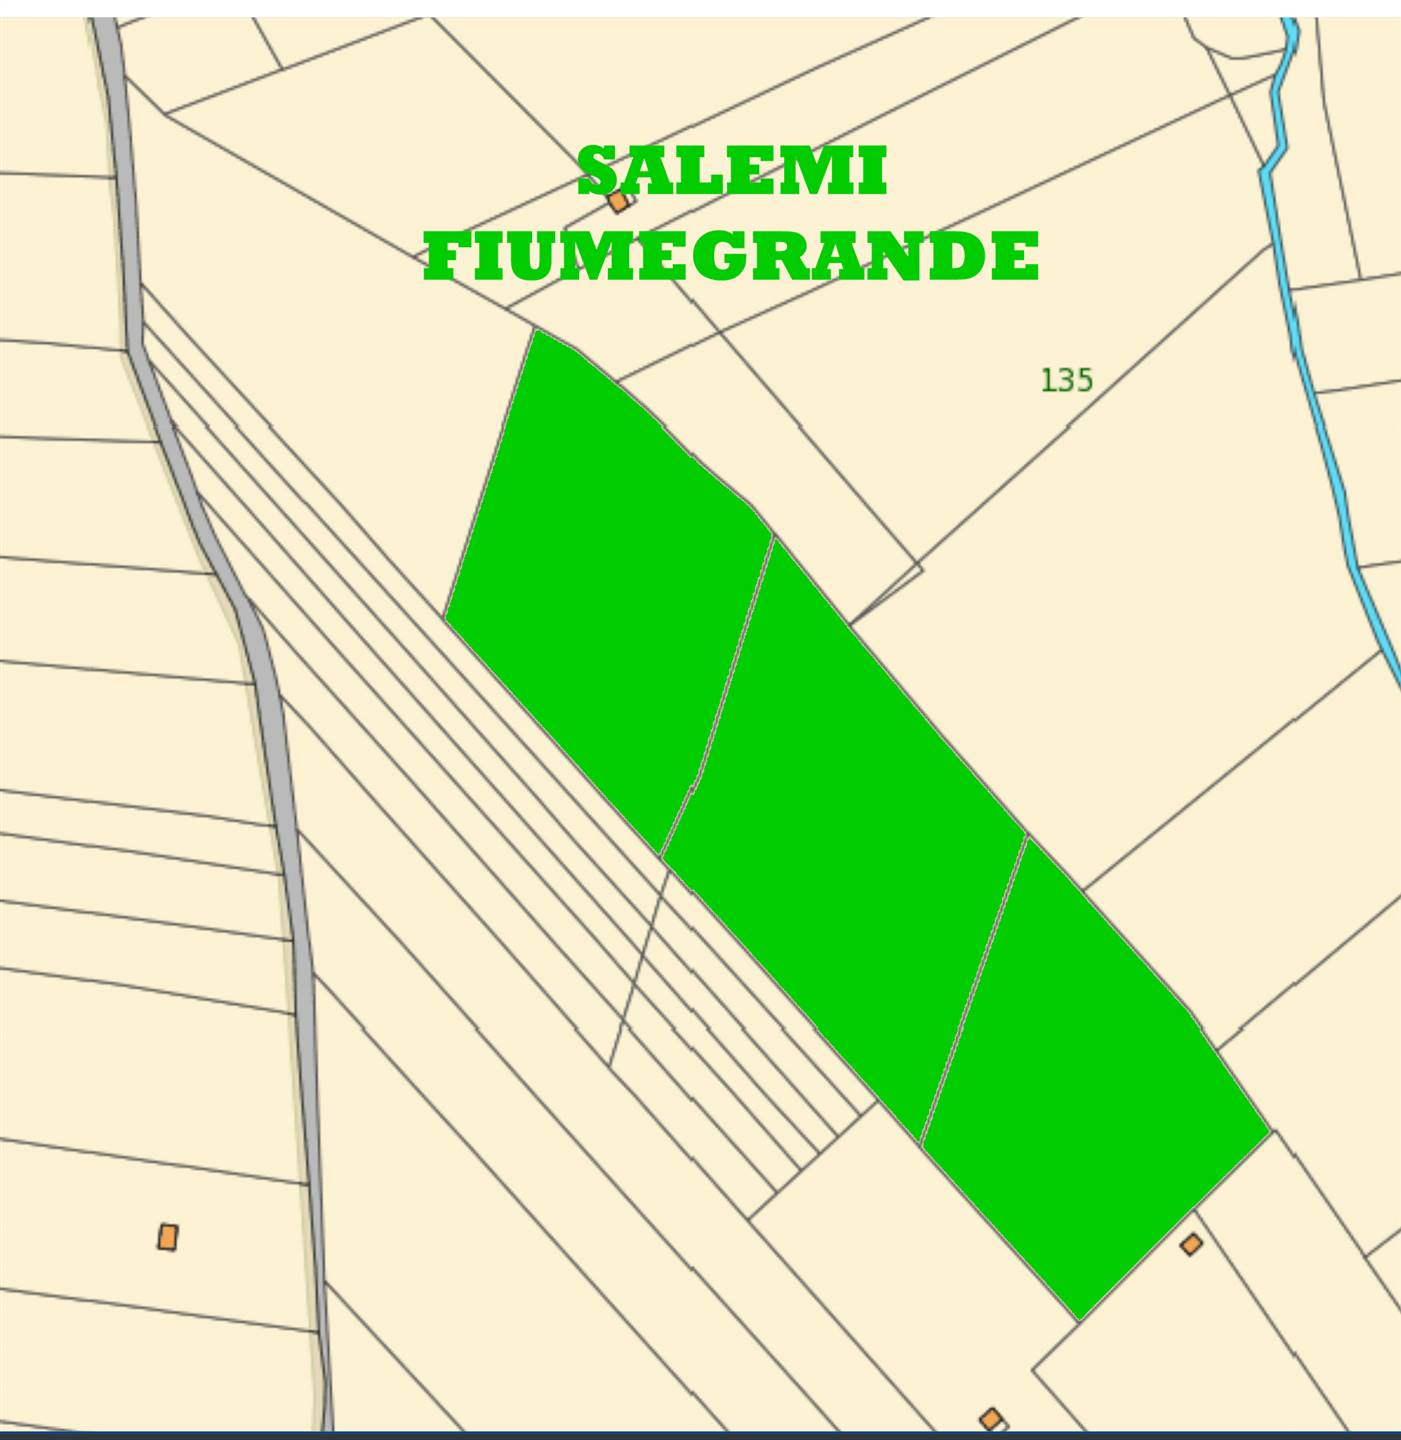 Farming plot of land in SALEMI